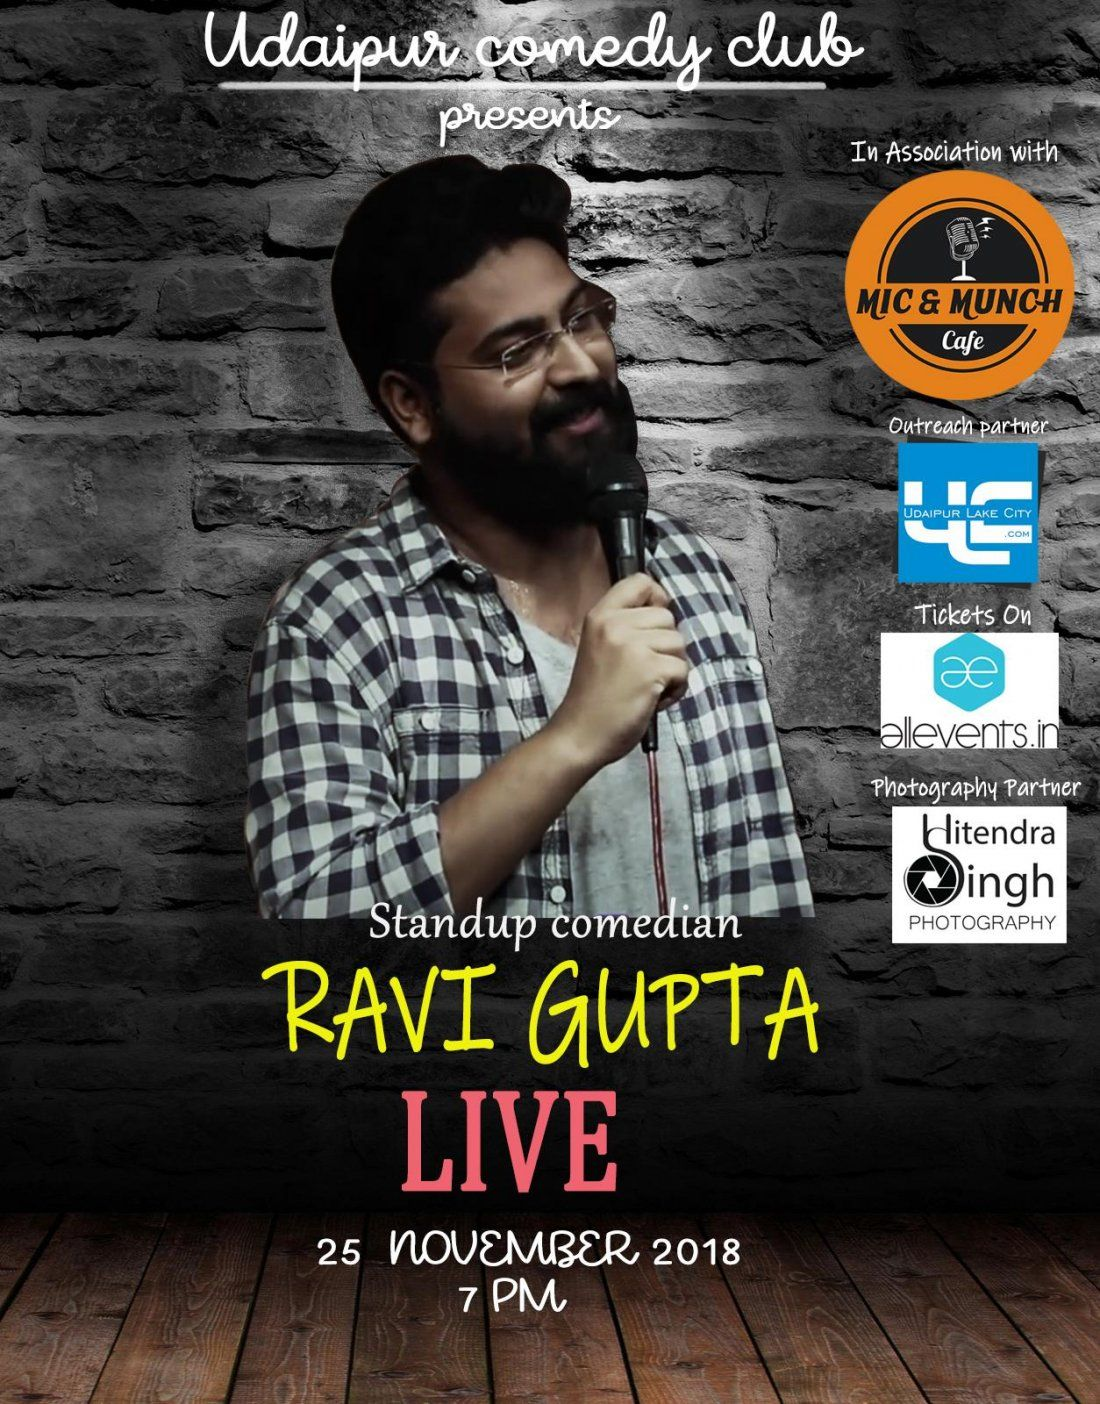 Buy tickets for Ravi Gupta LIVE in Udaipur (Cancelled)